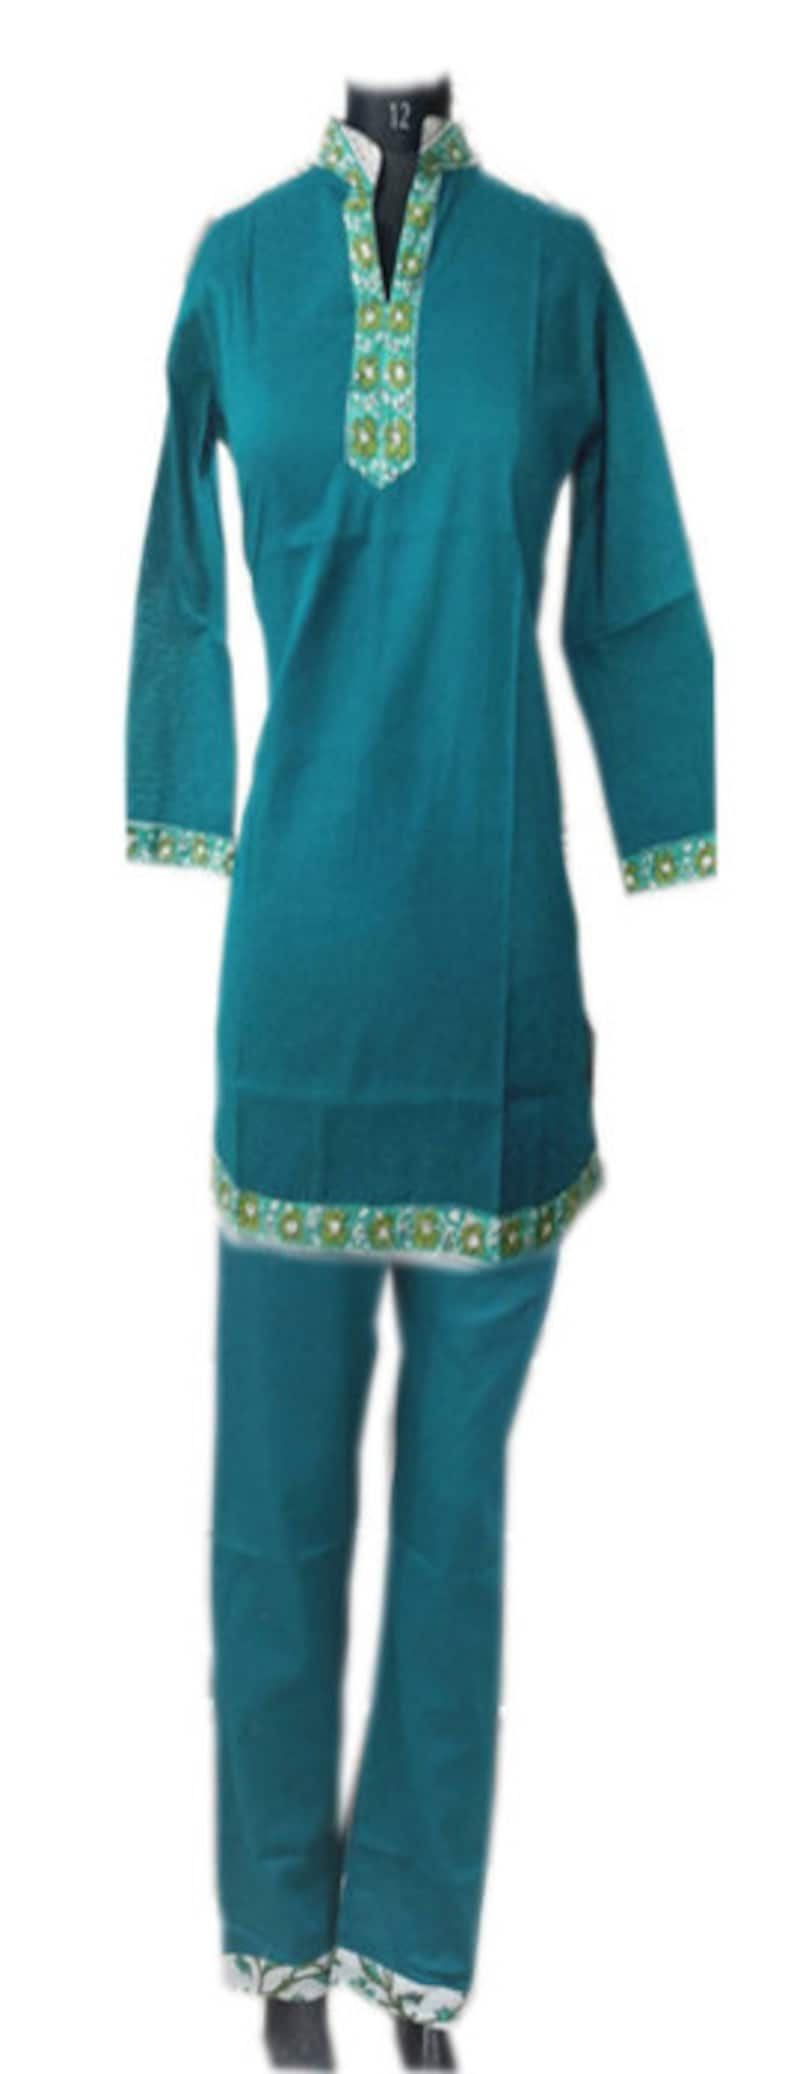 Tunic Kurti Blouse bocho clothe.we use only natural fabrics to give you comfort and style. Women kurti and pyjama with block printed boder